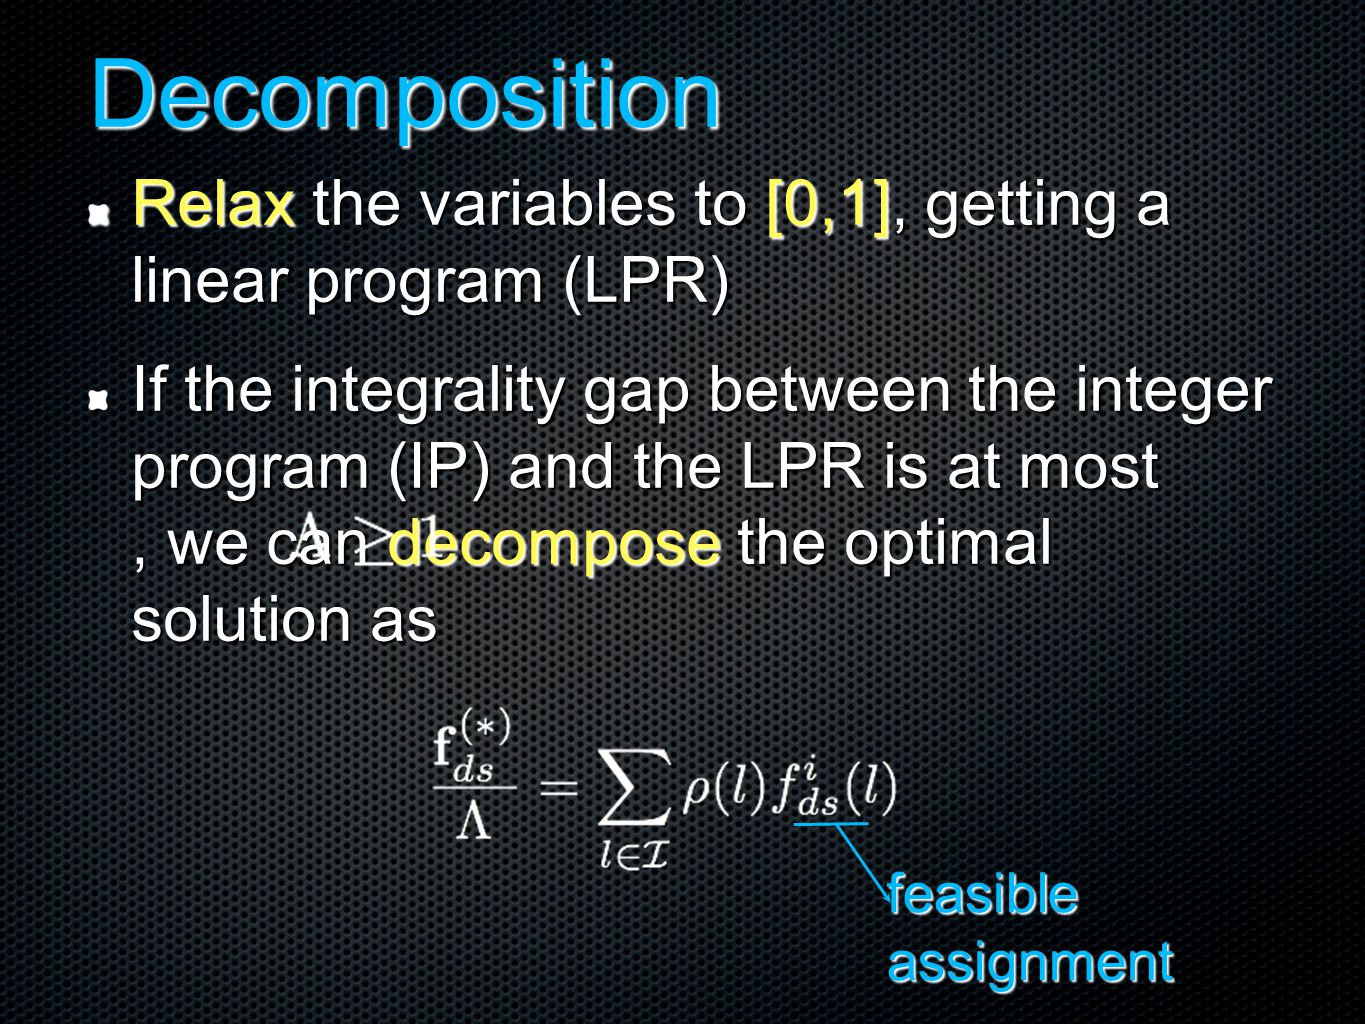 Decomposition Relax the variables to [0,1], getting a linear program (LPR) If the integrality gap between the integer program (IP) and the LPR is at most, we can decompose the optimal solution as feasible assignment